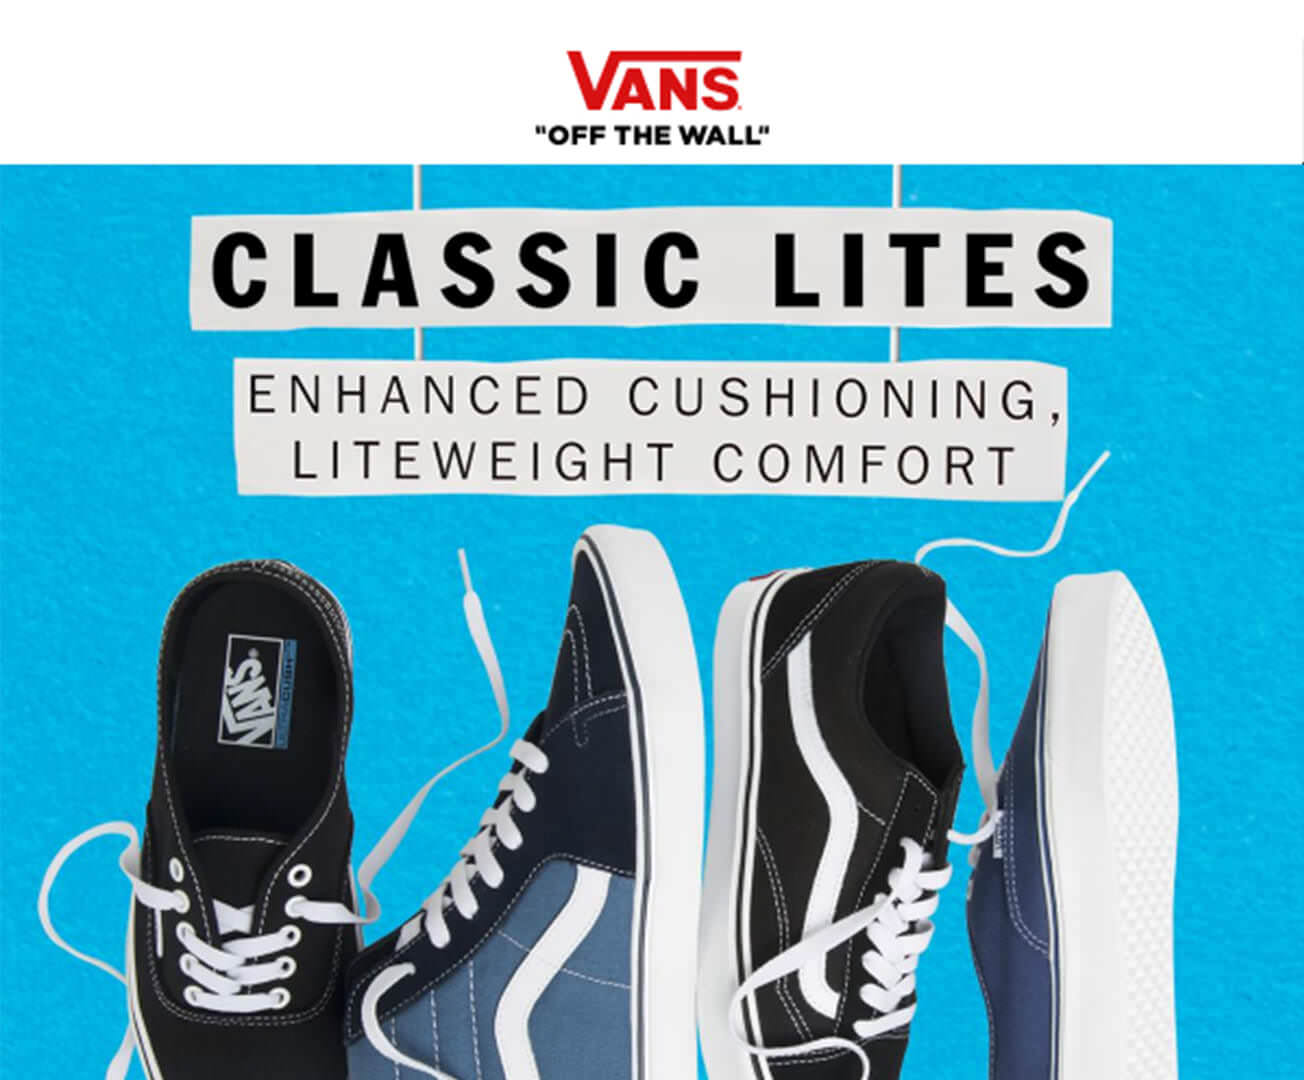 Vans - Email Marketing Campaign Example